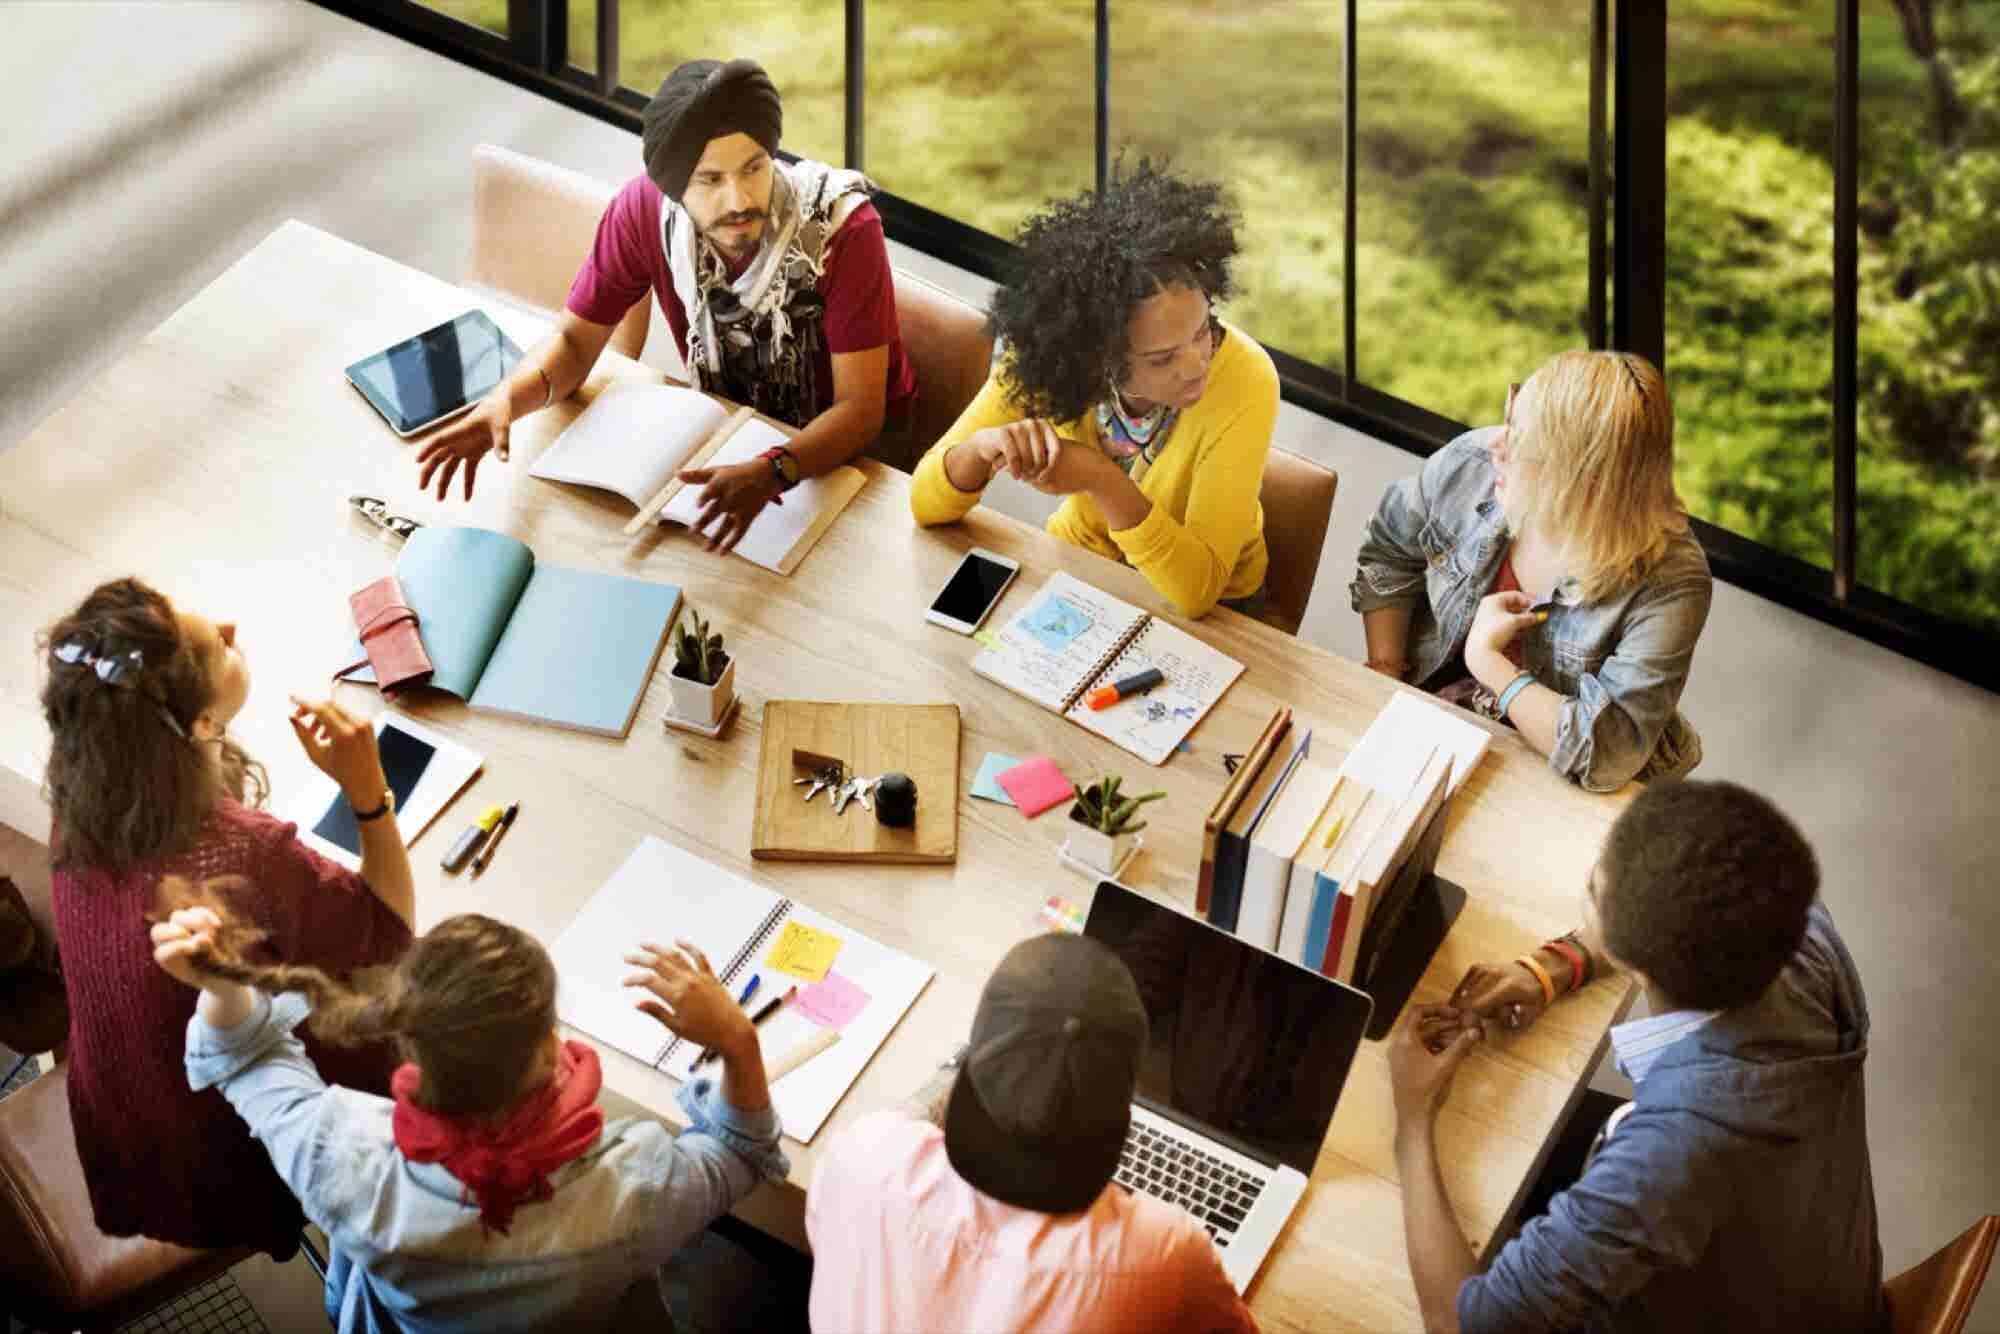 How to Bridge Company Cultures after a Merger